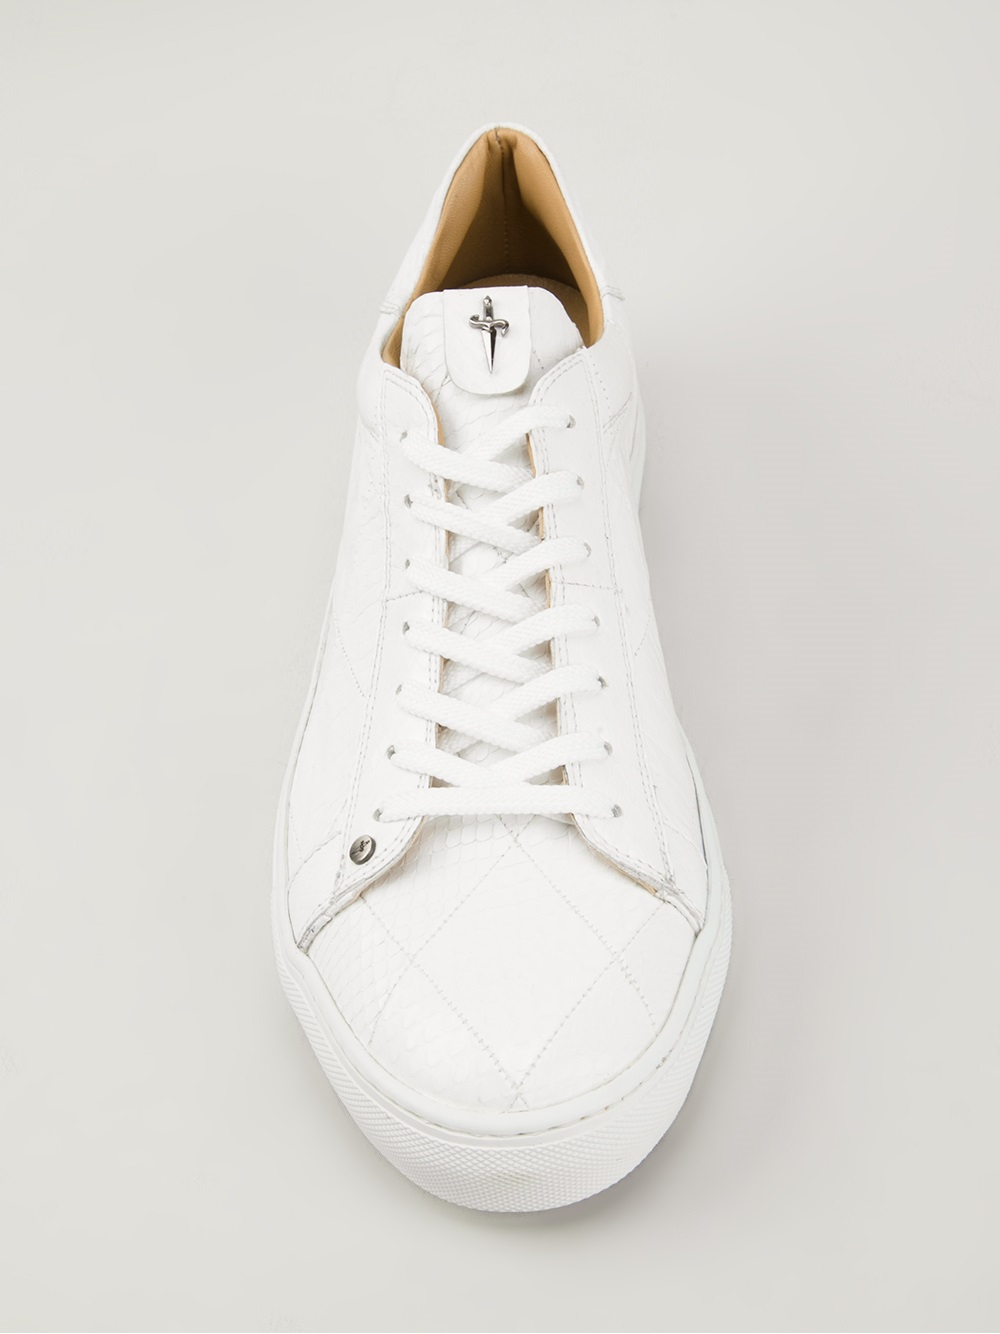 CESARE P. Sneakers White Women